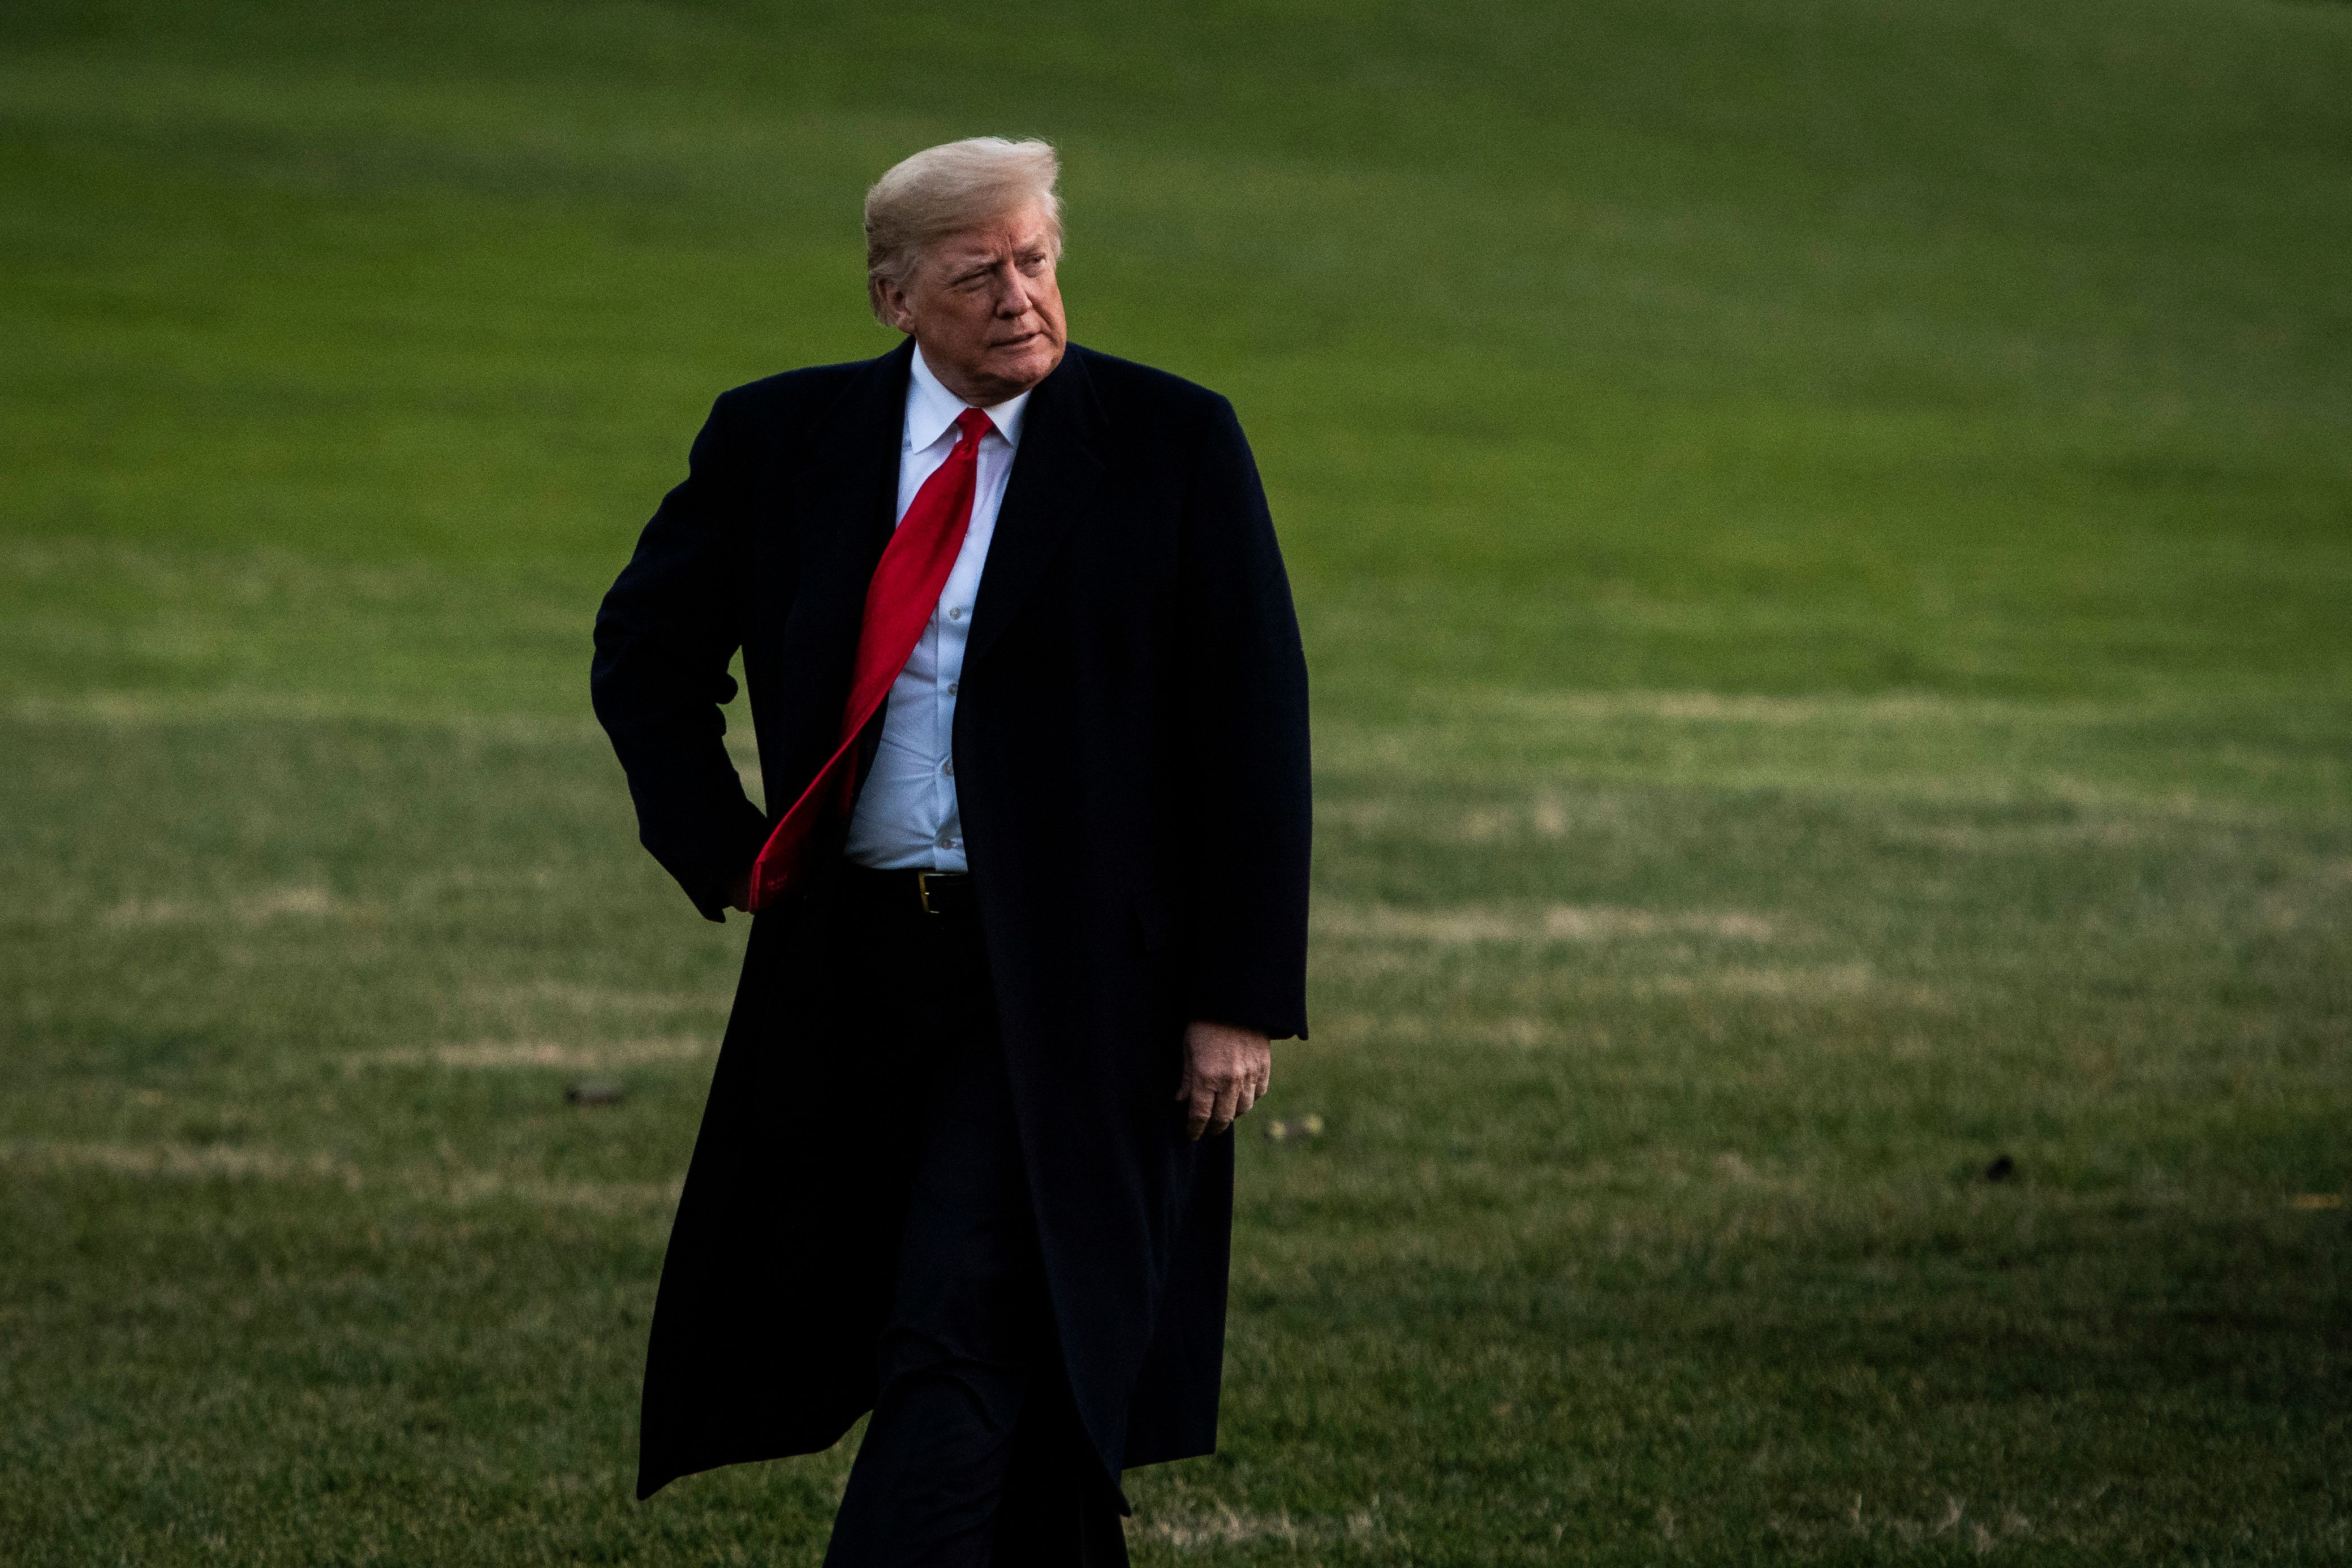 WASHINGTON, DC - DECEMBER 7 : President Donald J. Trump disembarks Marine One and walks back across the South Lawn of the White House on Friday, Dec. 07, 2018 in Washington, DC. (Photo by Jabin Botsford/The Washington Post via Getty Images)